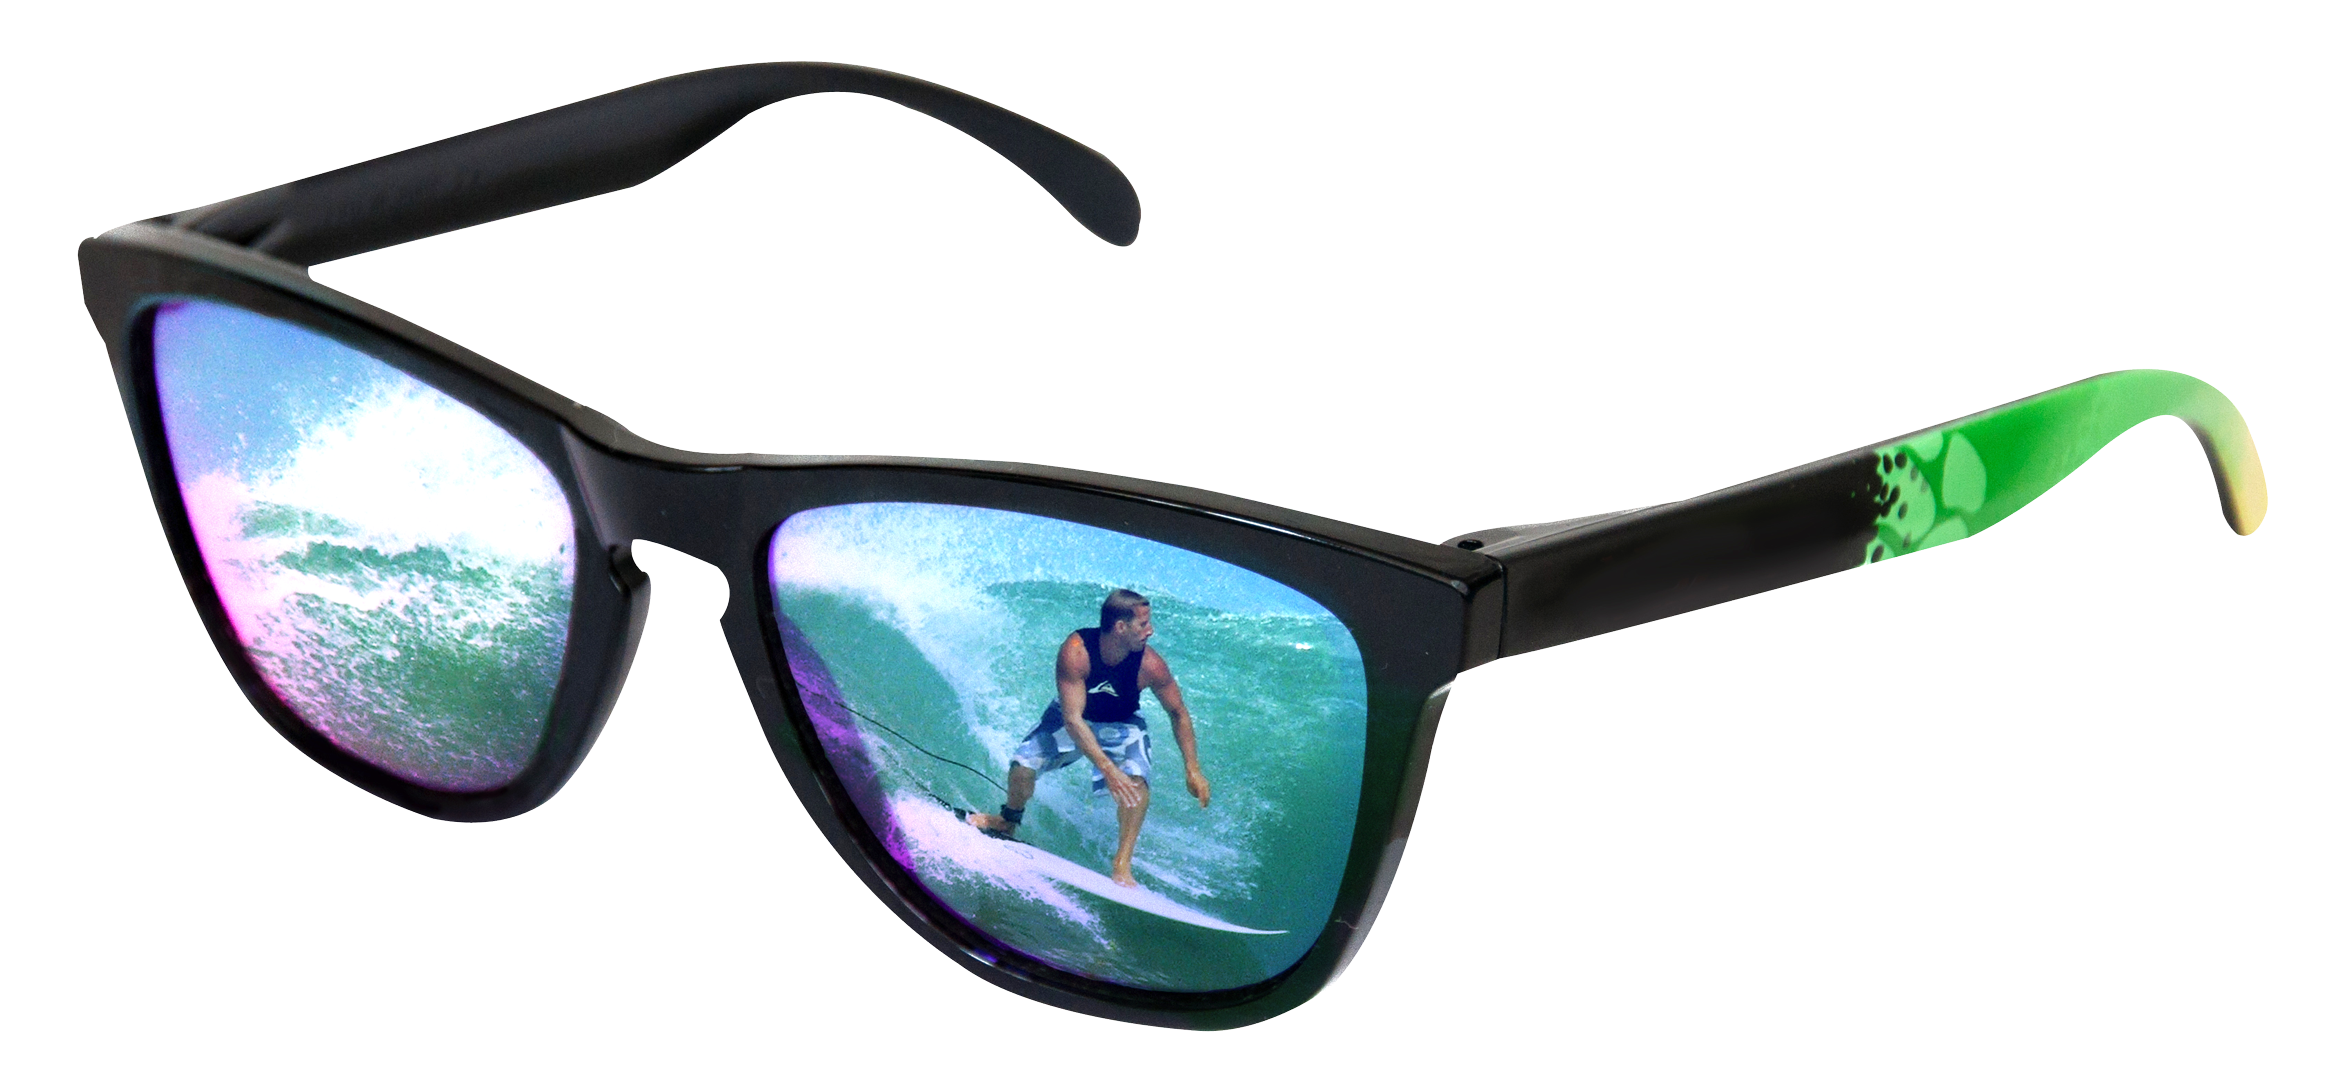 Sunglass PNG Transparent Sunglass.PNG Images..